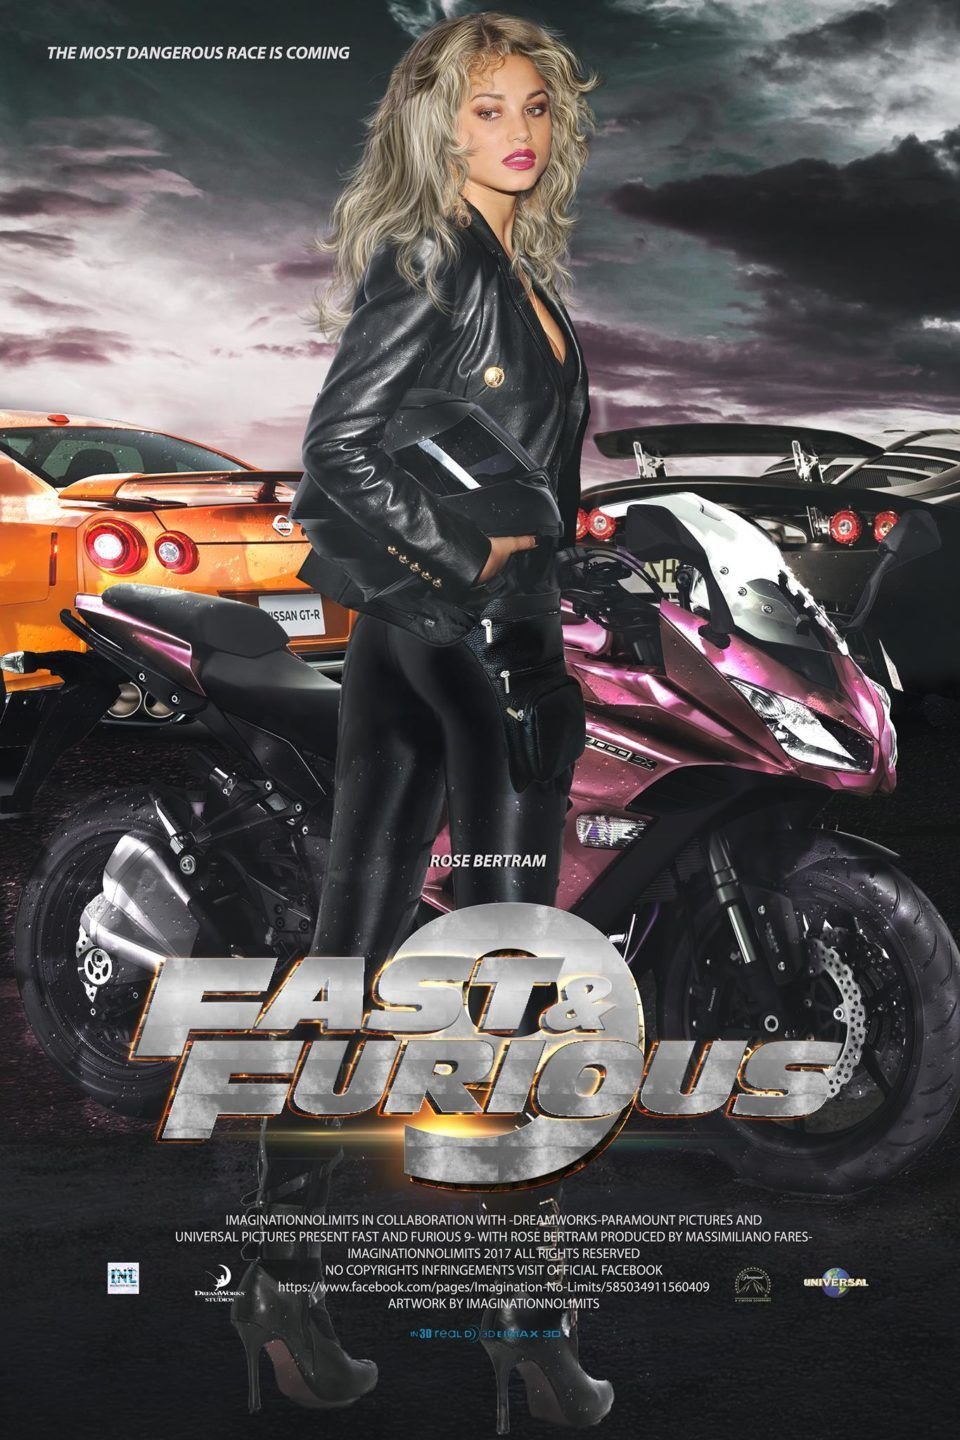 fast and furious 9 movie poster with rose bertram by